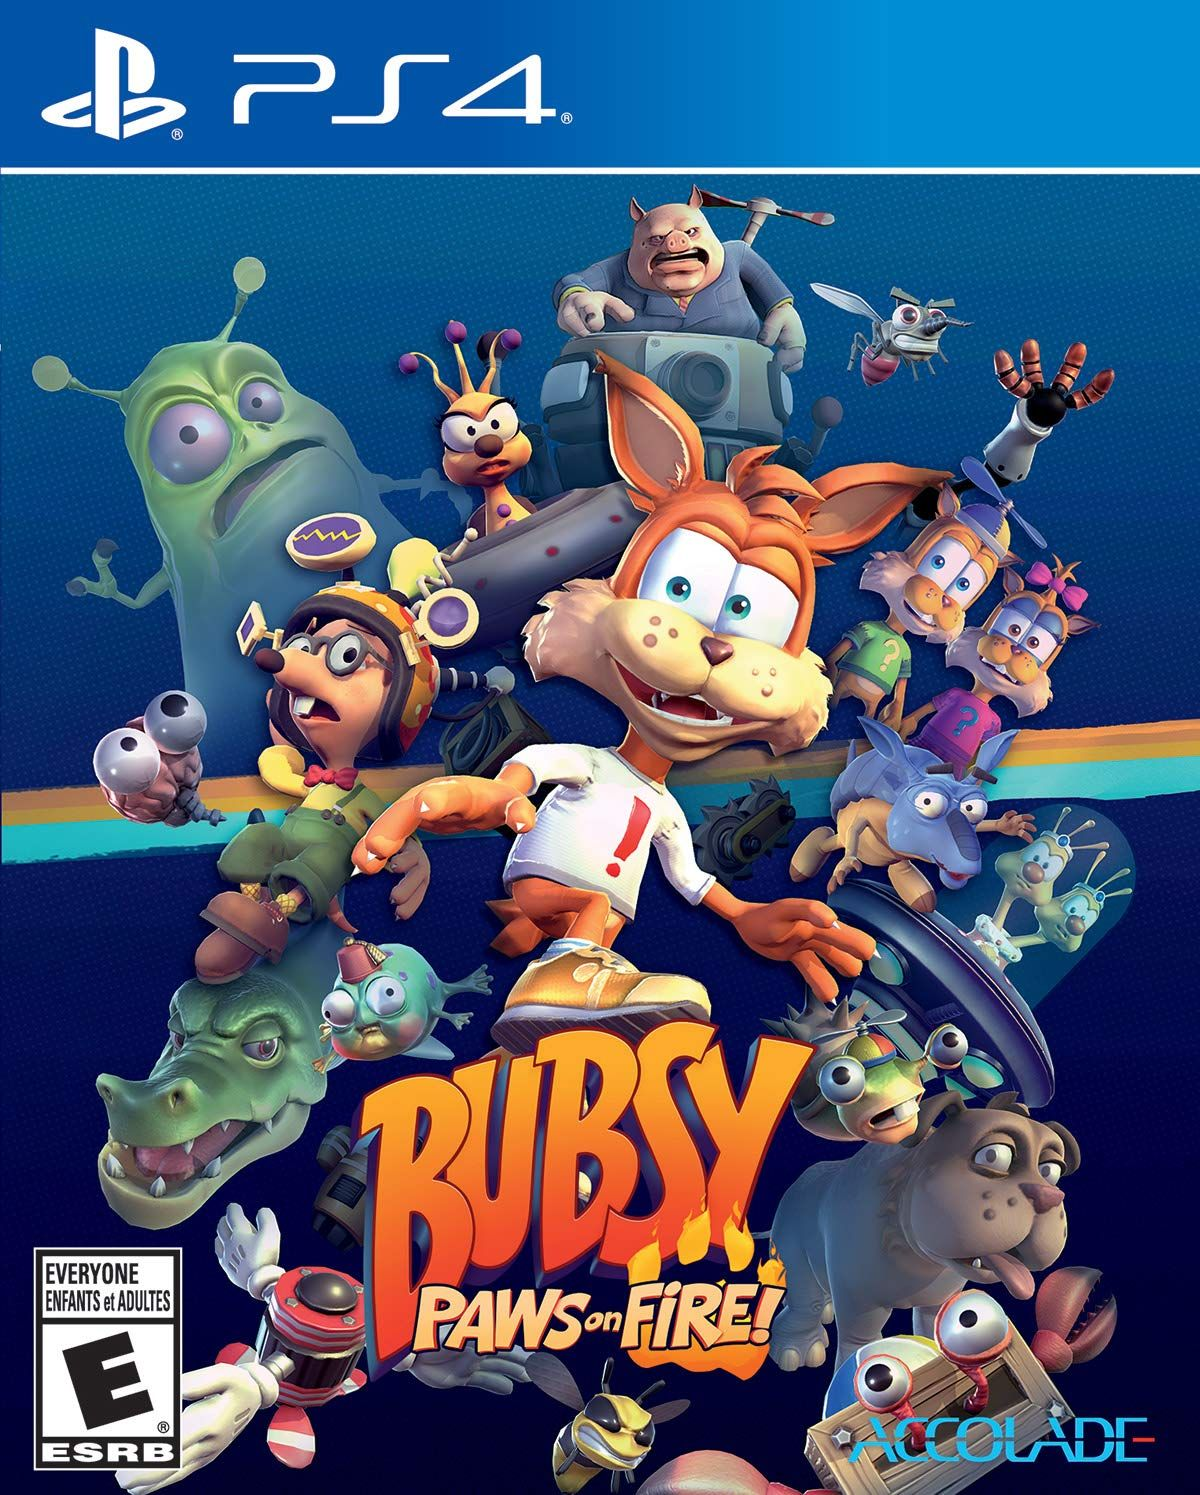 Bubsy: Paws on Fire [PS4] 5.05 / 6.72 / 7.02 [USA] (2019) [Английский] (v1.00)